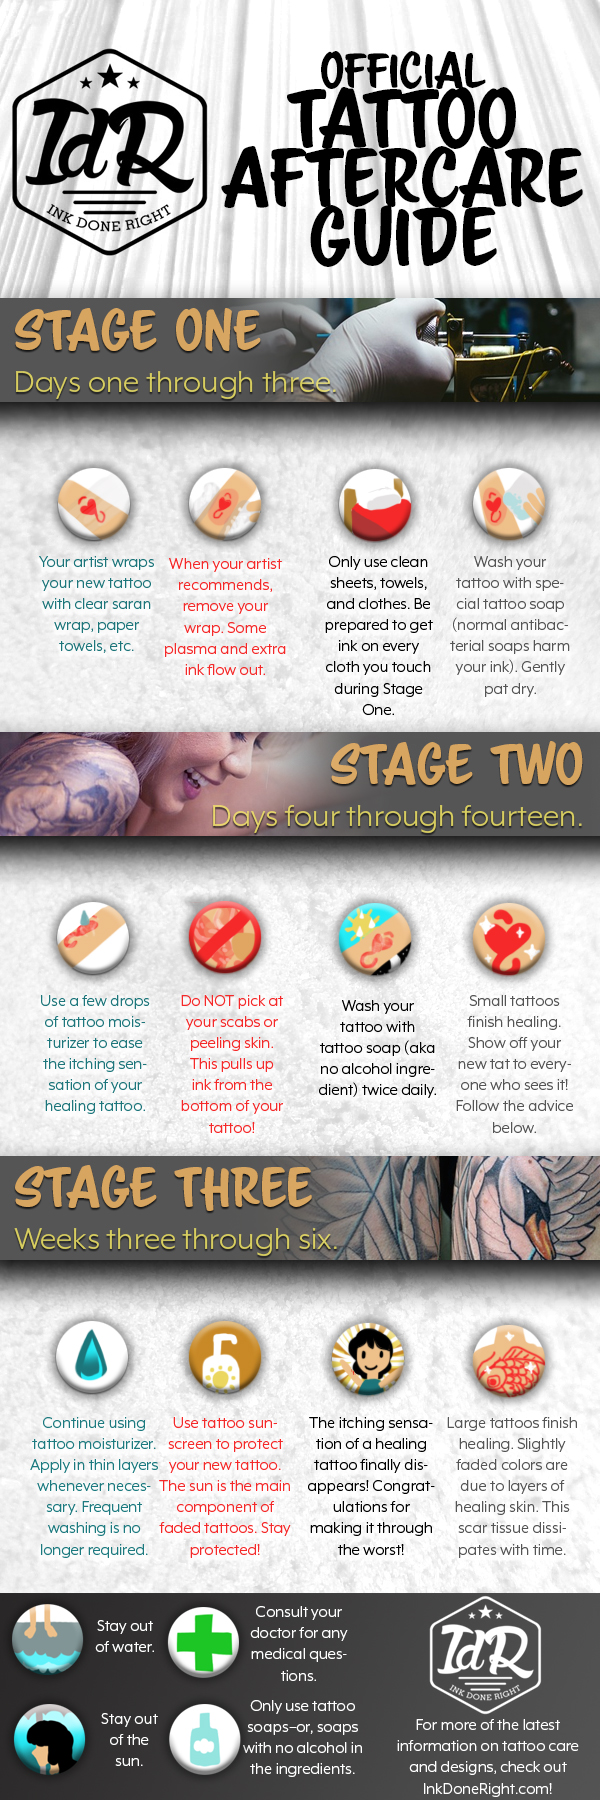 Tattoo-AfterCare-Guide-Tattoo-Care